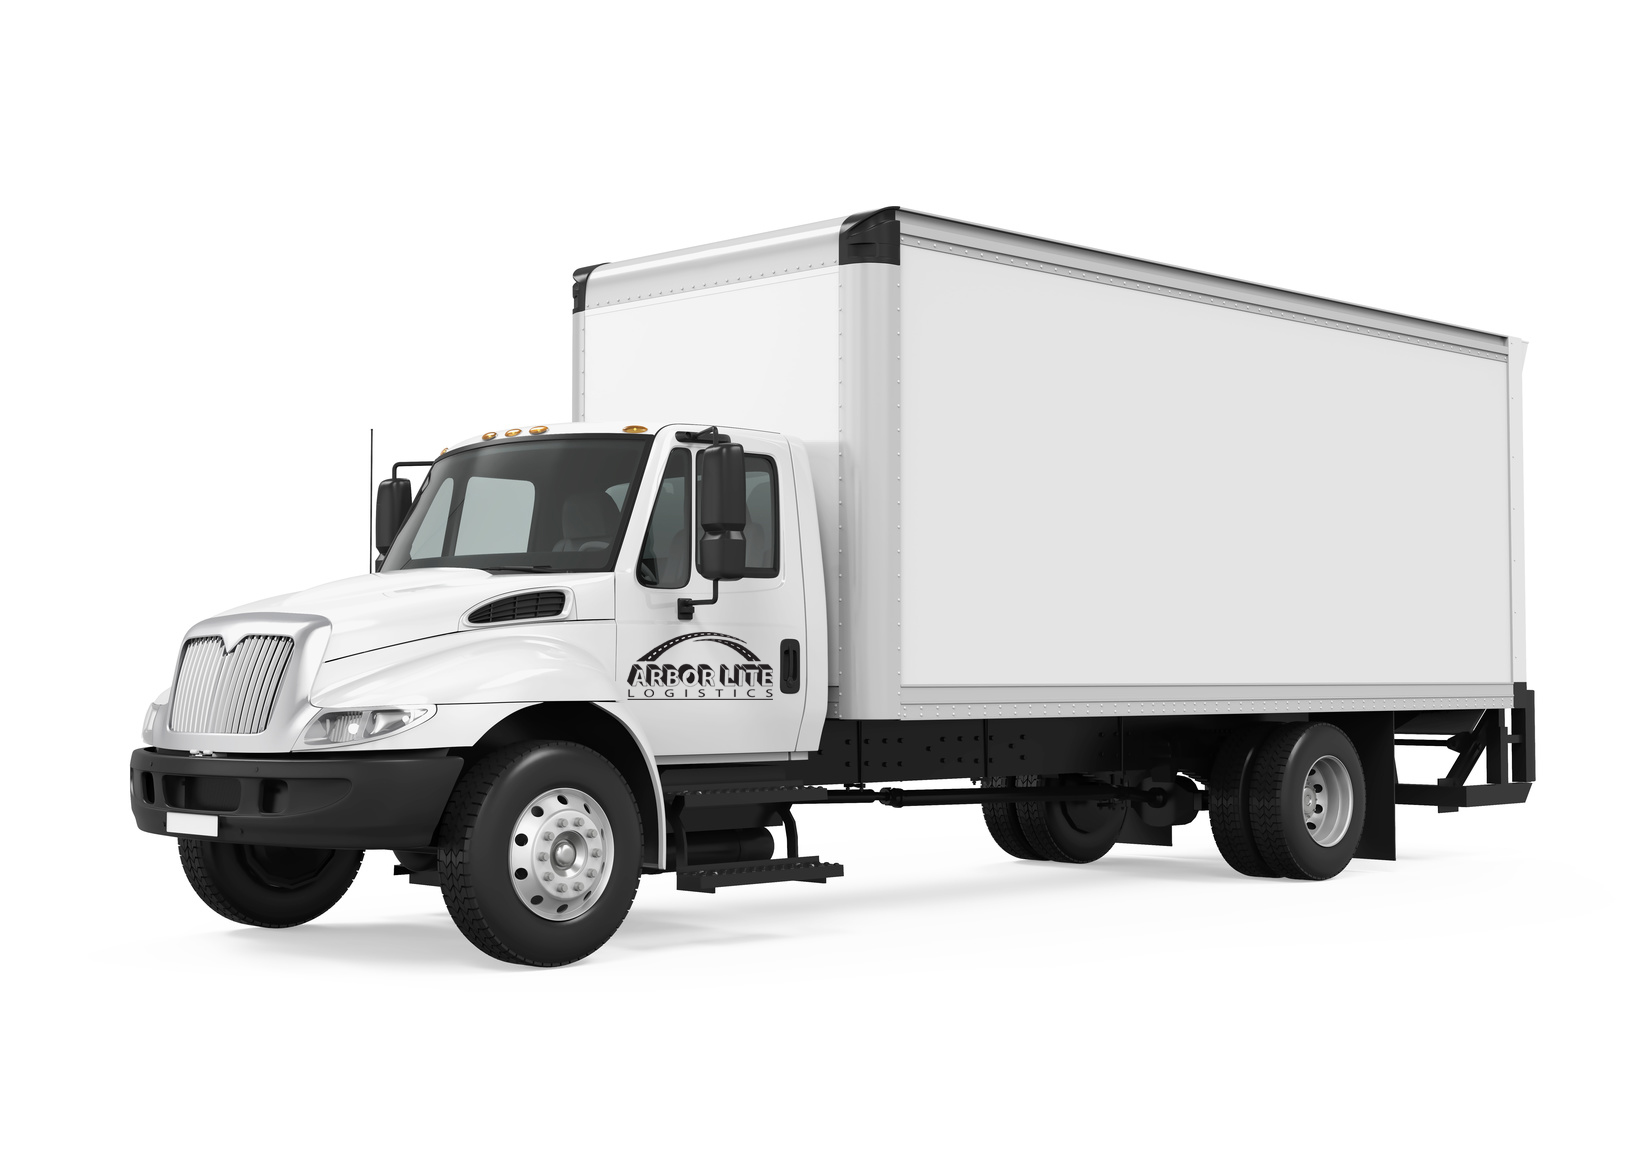 pictures of trucks canadian military pattern truck wikidata of pictures trucks